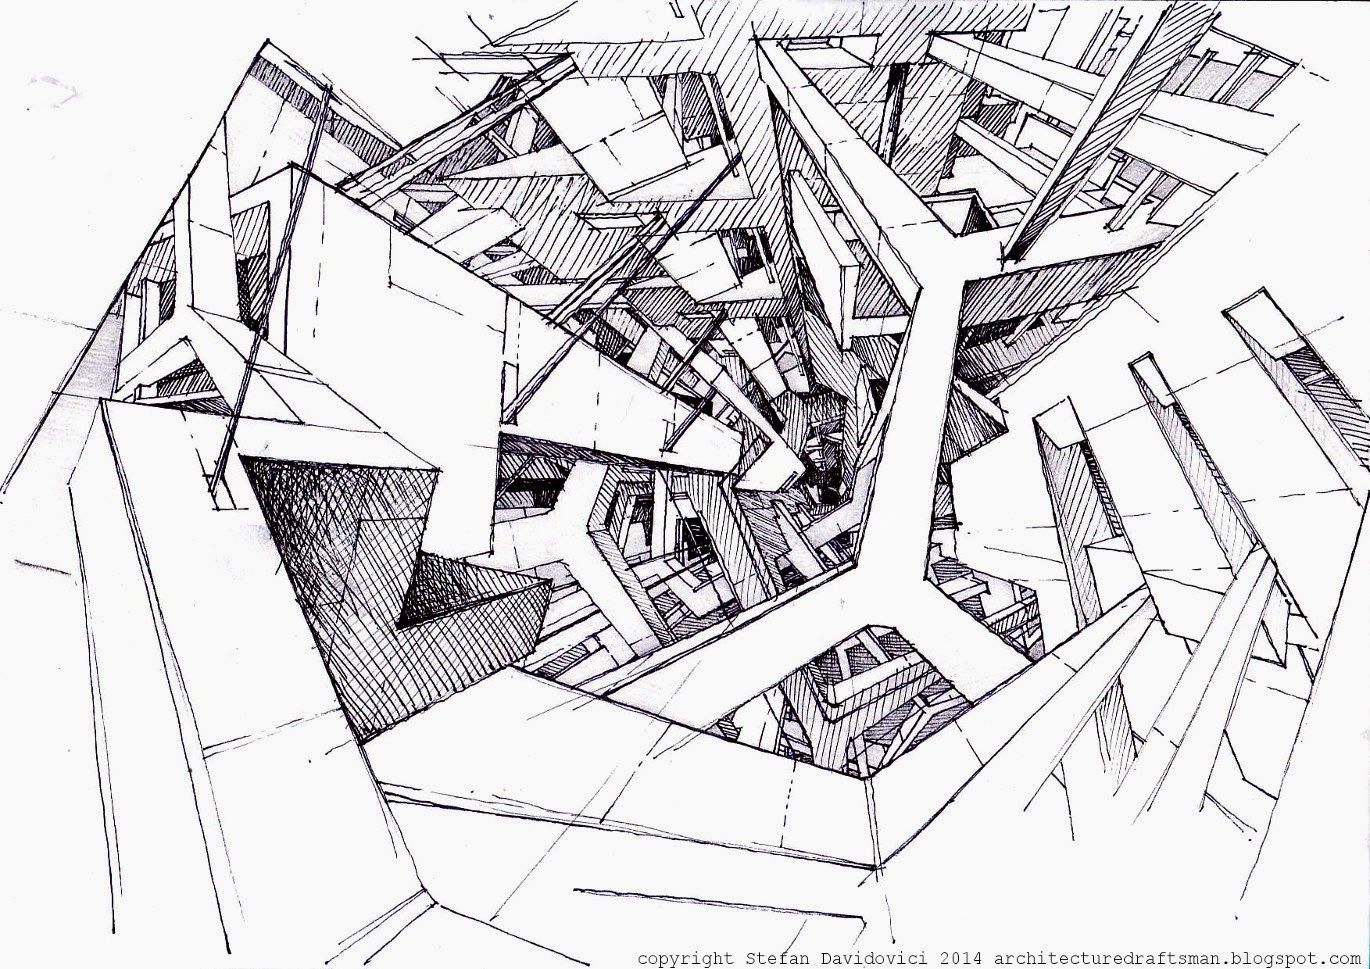 The Architecture Draftsman Architecture Concept Drawings Architecture Sketch Architecture Drawing